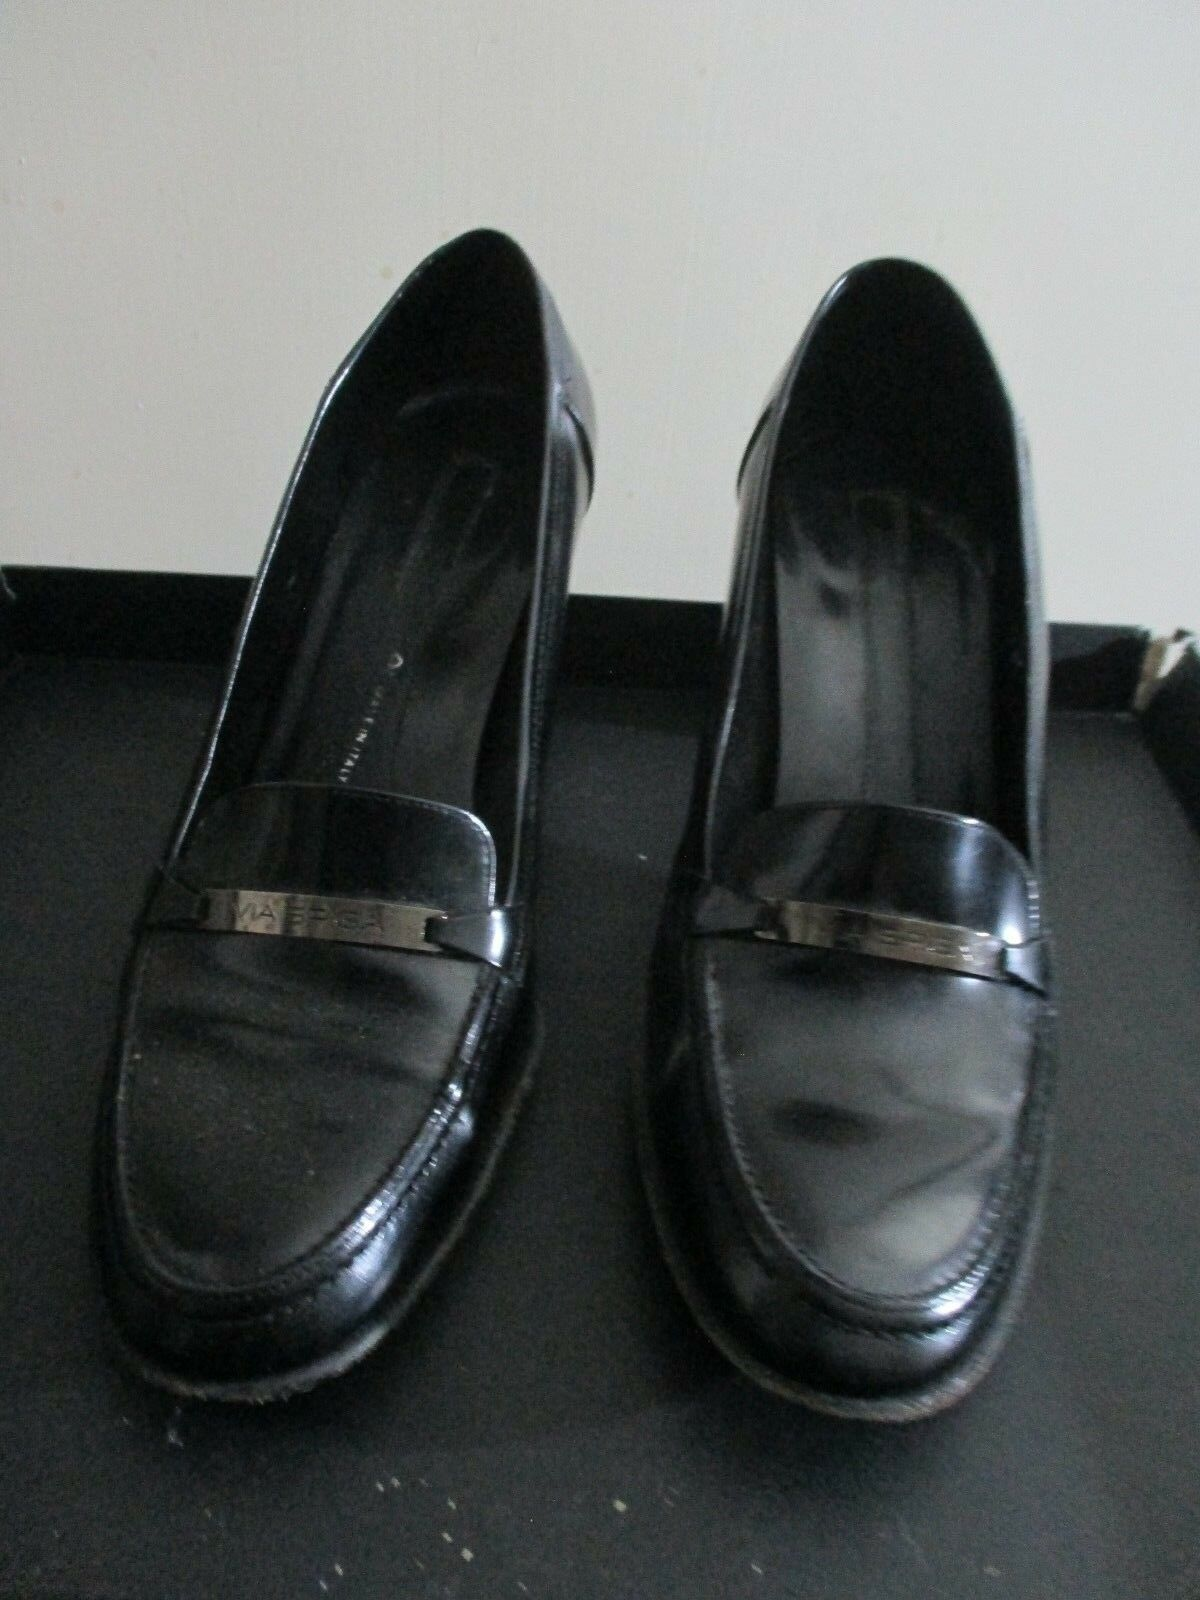 Via Spiga black leather high heel shoes pumps Size 9.5 Made in